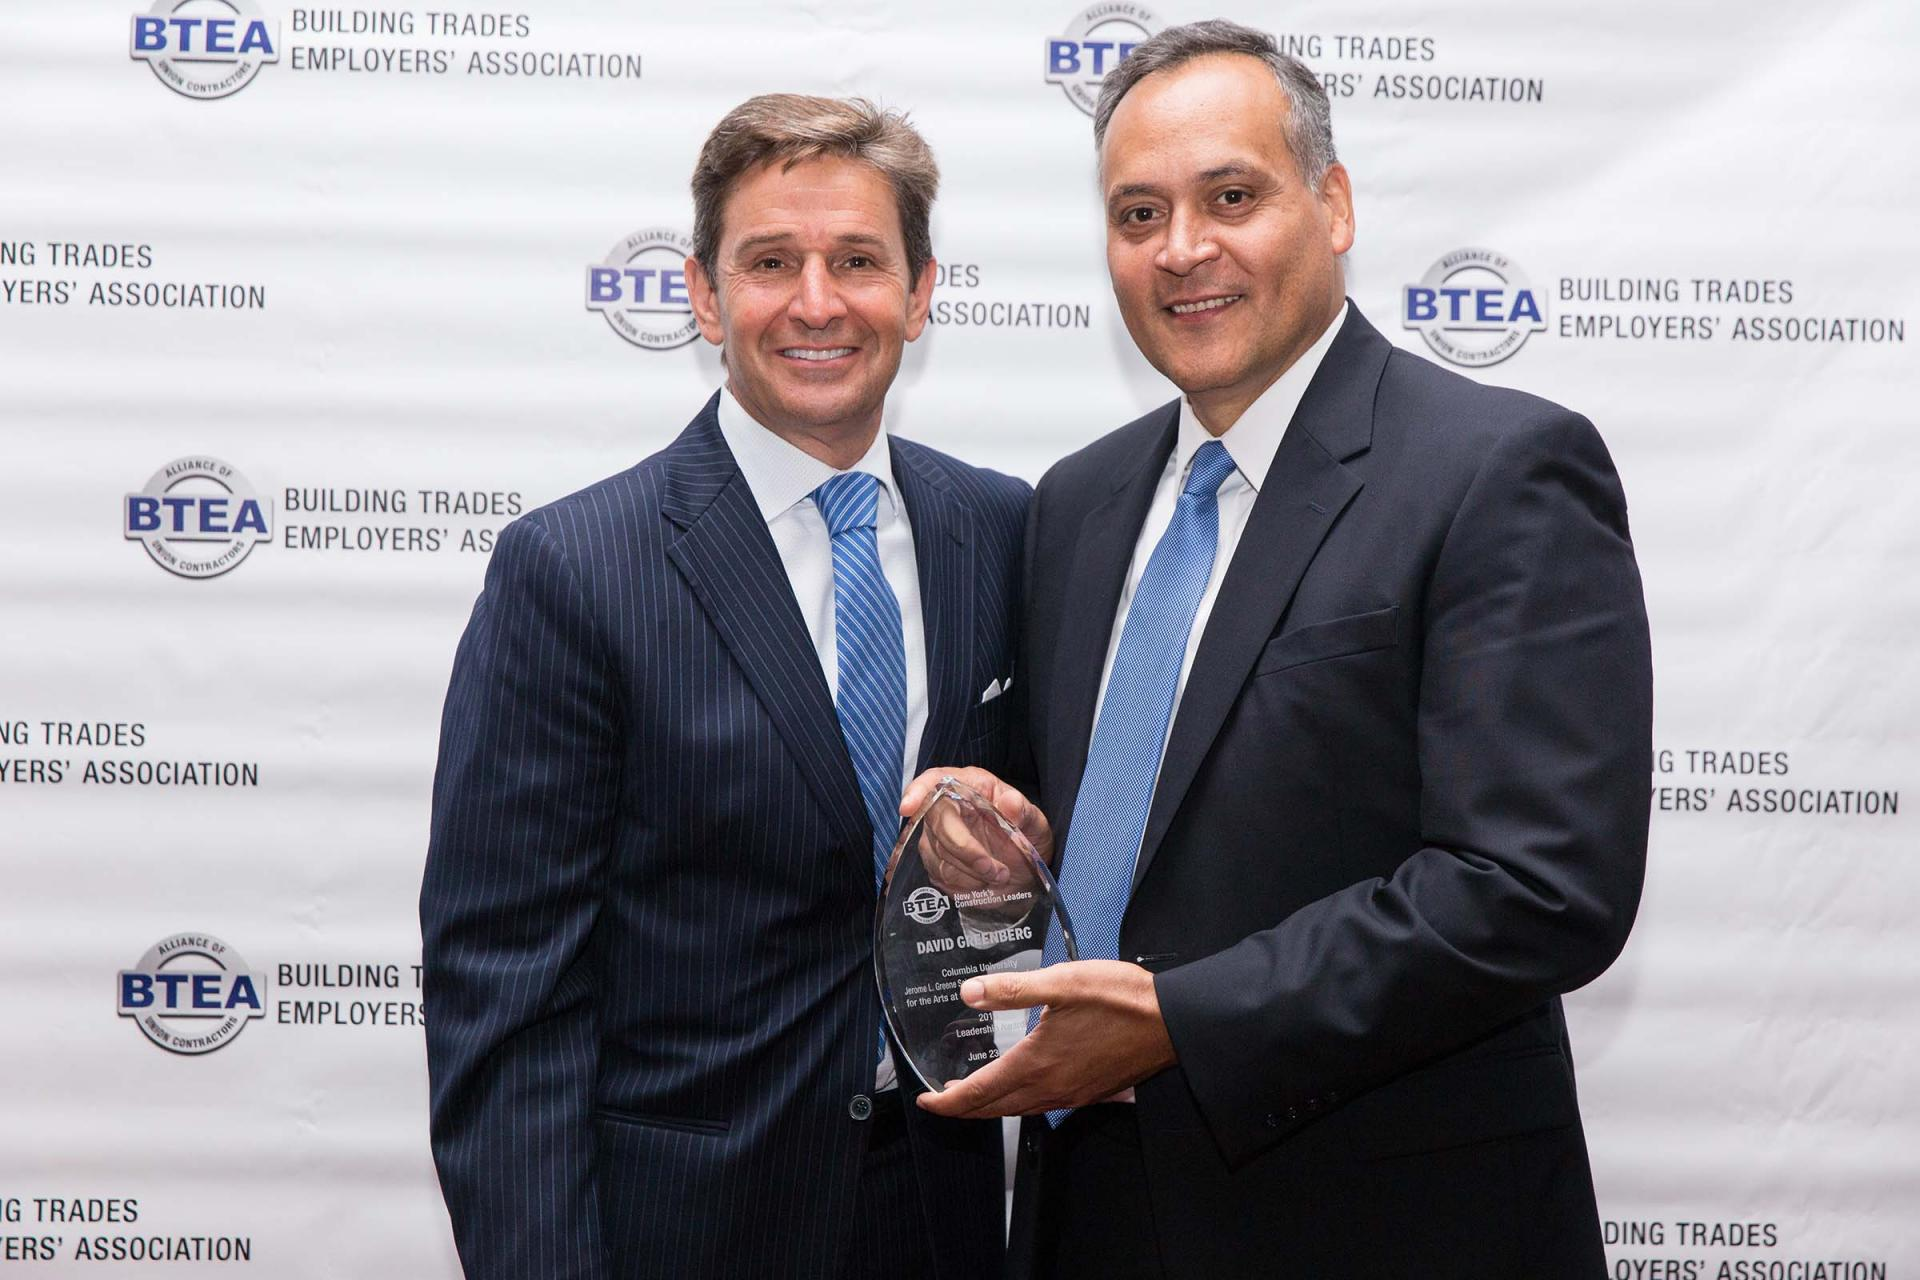 Marcelo Velez, vice president of Columbia's Manhattanville Development Group, receiving the BTEA Leadership Award on behalf of David M. Greenberg, executive vice president of Columbia University Facilities and Operations, from Ralph Esposito, president of Lendlease US Construction.